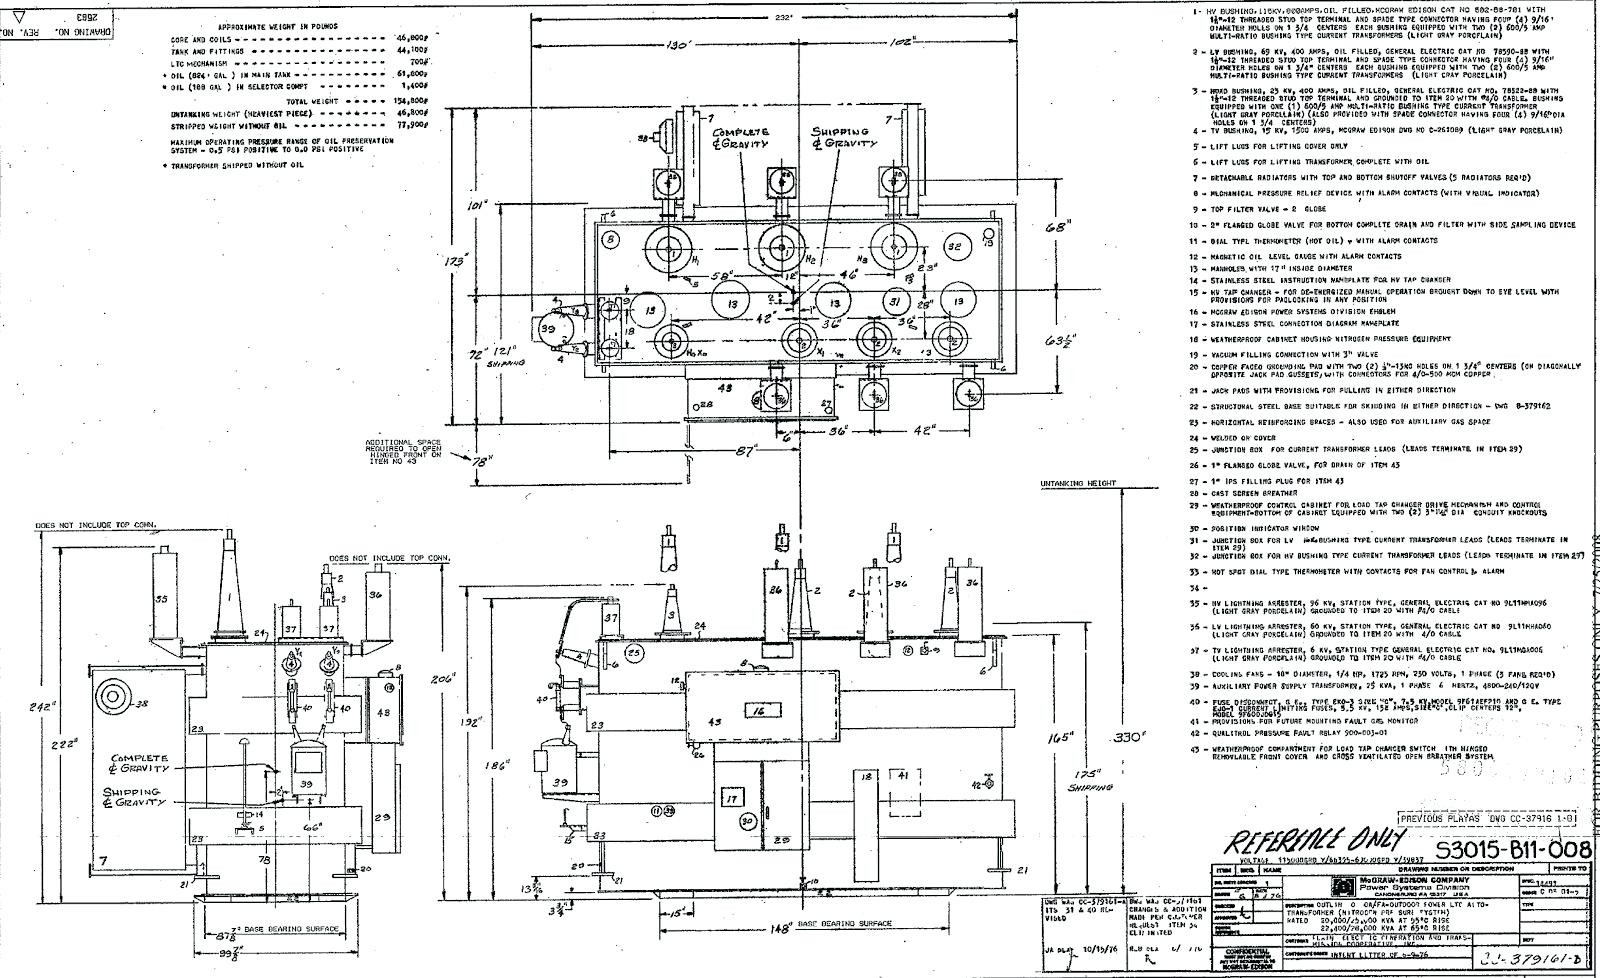 1991 ford tempo wiring diagram  ford  auto wiring diagram